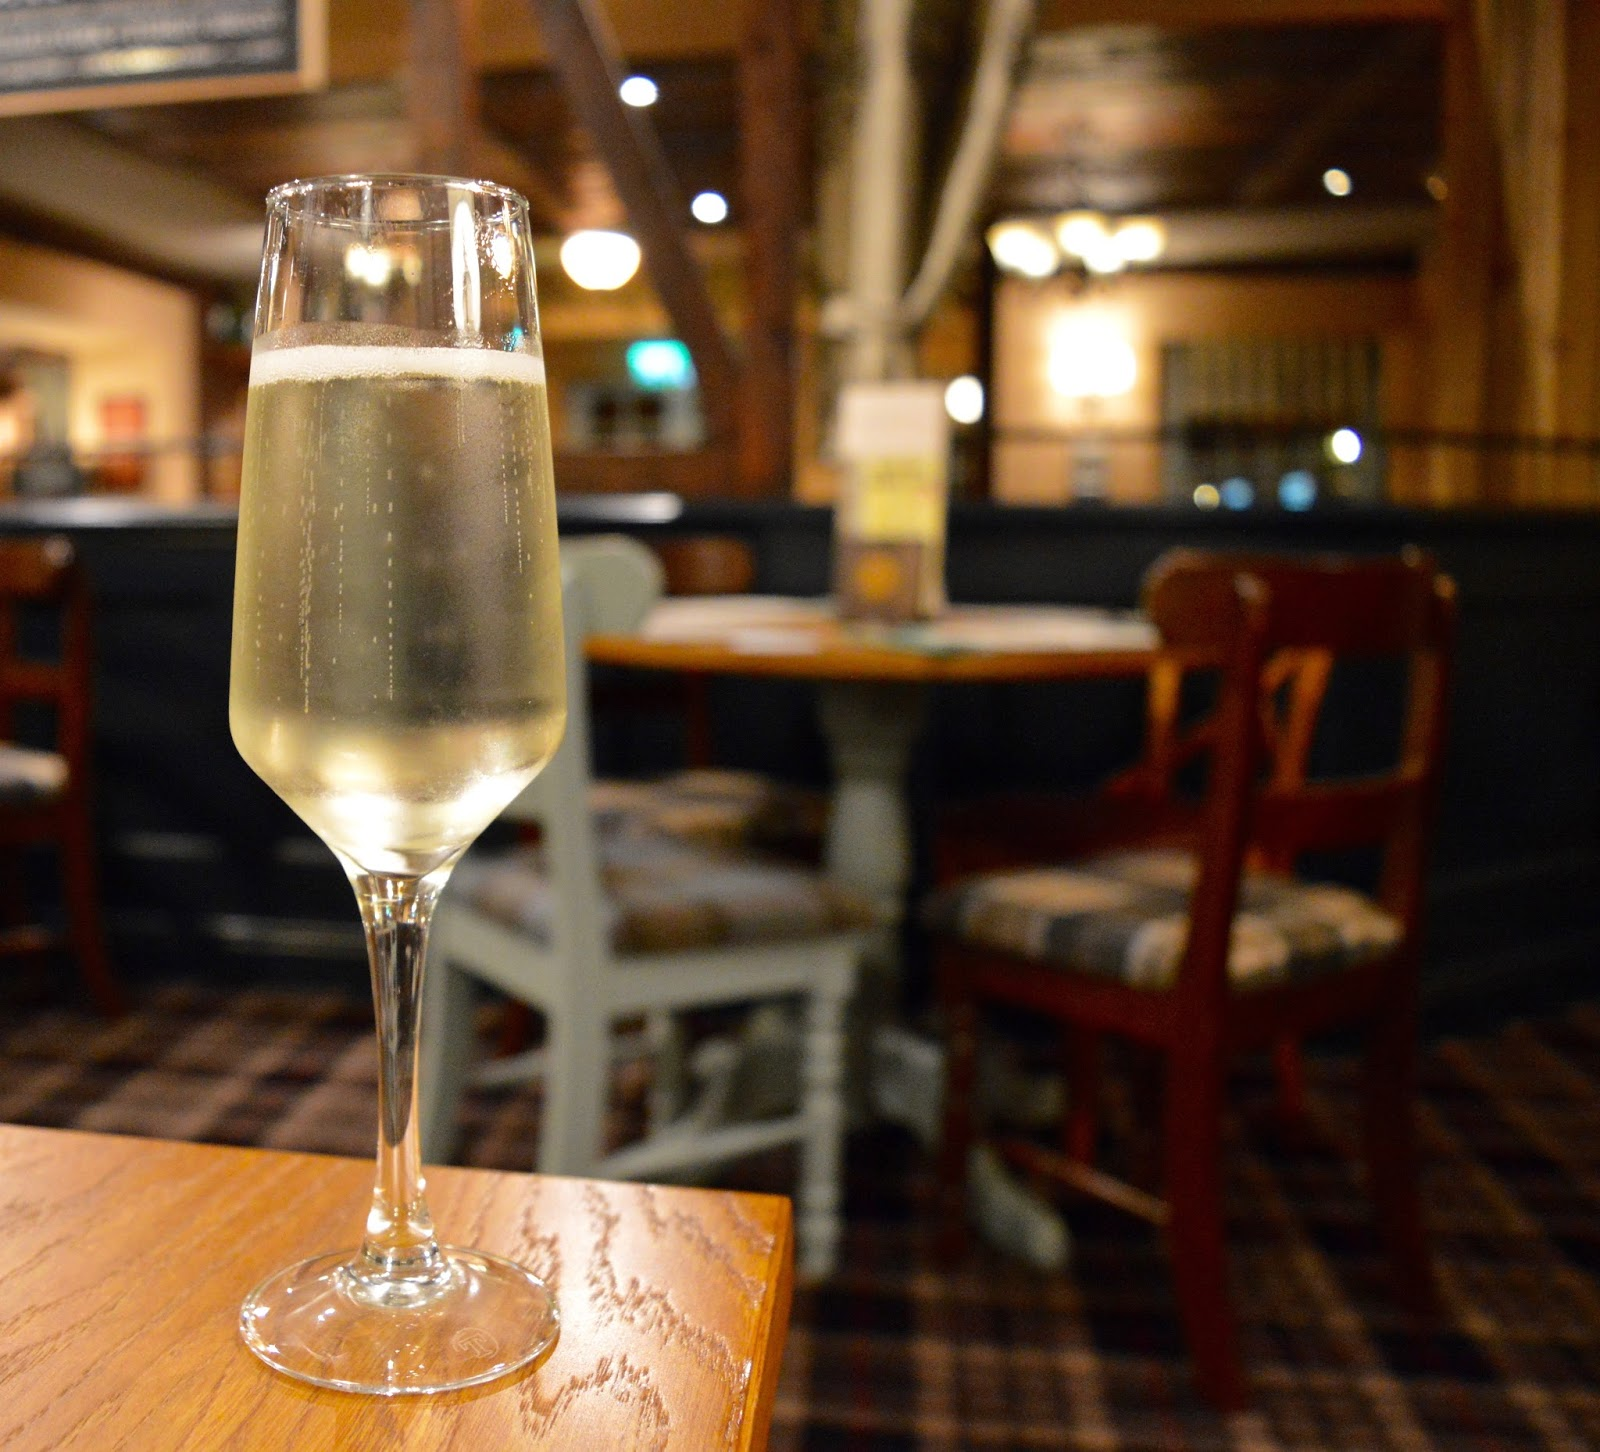 The Kingslodge Inn, Durham | A Review - A lovely budget hotel near the train station and city centre - Prosecco